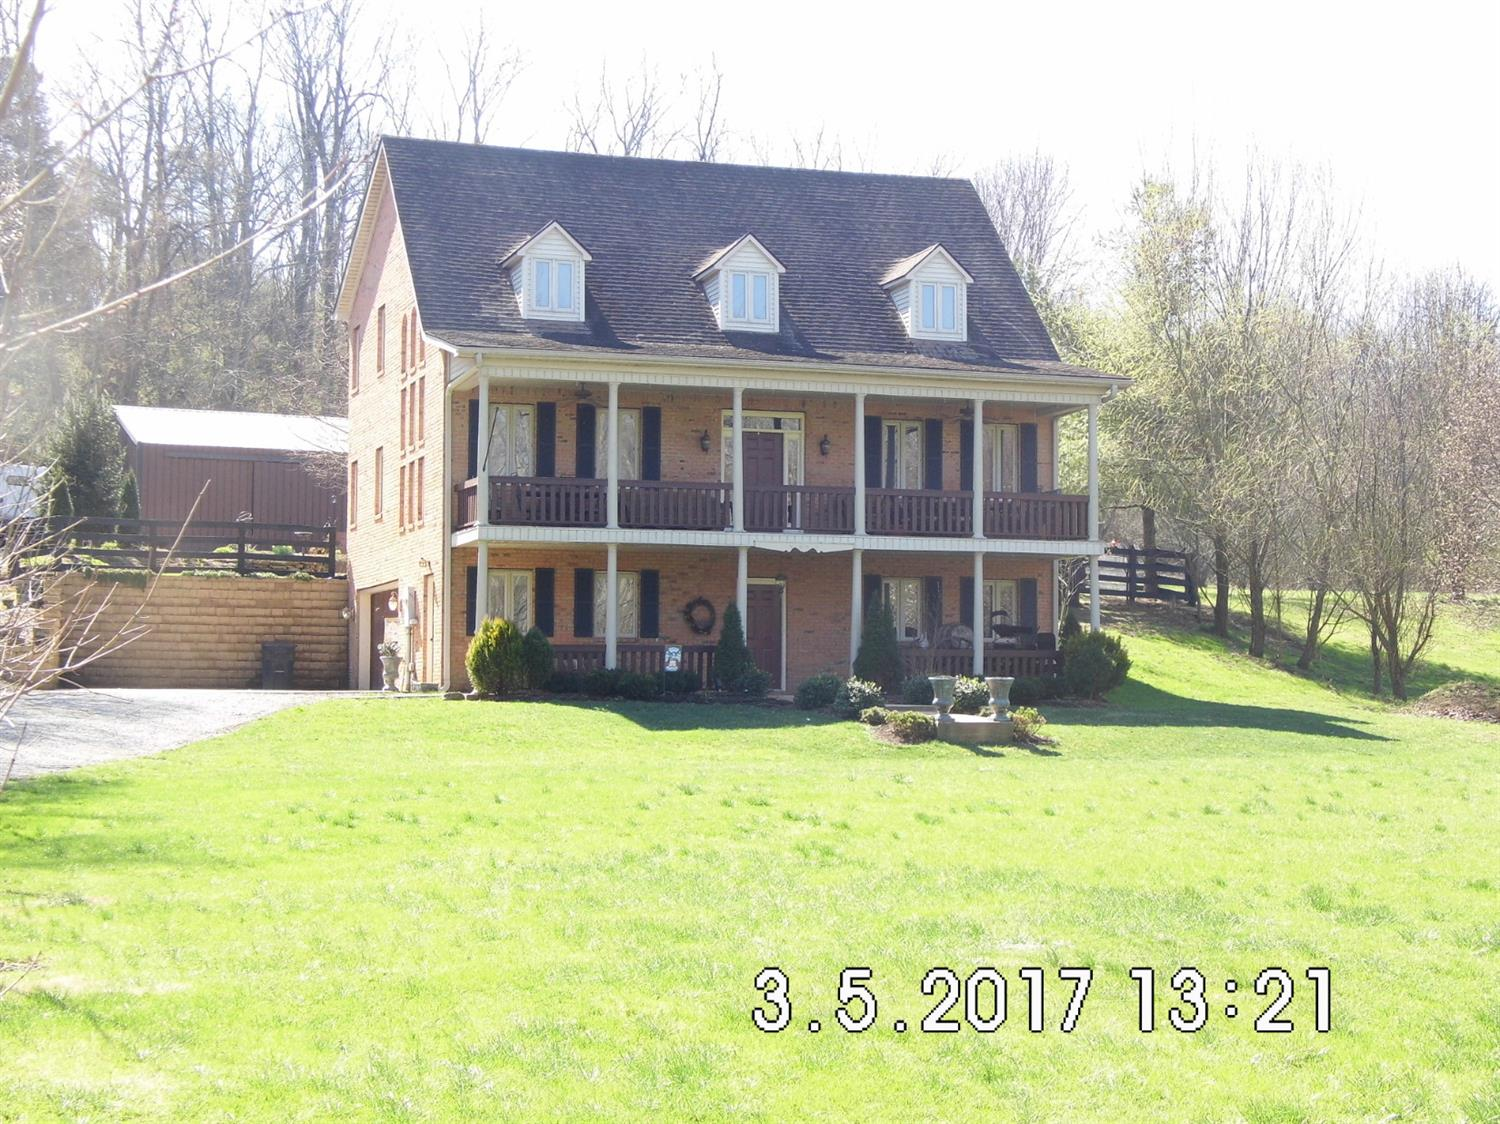 237%20Mansfield%20Rd.%20Danville%20KY.%20%20Absolutely%20Gorgeous%204%20bedroom%202.5%20bath%20home%20situated%20on%20approximately%201%20acre%20only%20minutes%20from%20Danville%20just%20off%20of%20Goggin%20Rd.%20%20Well%20manicured%20home%20with%20hardwood%20throughout%20most%20of%20the%20home%20with%20carpet%20in%20the%20bedrooms.%20%20The%20focal%20point%20of%20the%20home%20is%20the%20amazing%20staircase%20just%20off%20of%20the%20main%20living%20area.%20%20This%20home%20features%20a%20large%20eat%20in%20kitchen%20as%20well%20as%20a%20formal%20dining%20room.%20%20All%20the%20bedrooms%20are%20above%20average%20size%20with%20plenty%20of%20room%20for%20a%20king%20bed.%20%20The%20outdoor%20areas%20of%20this%20home%20scream%20Entertainment%20with%20the%20pool%20and%20patio%20area.%20%20Nice%20backyard%20with%20a%20large%20workshop%20to%20store%20all%20your%20outdoor%20work%20and%20play%20items.%20%20There%20is%20a%20nice%20creek%20across%20the%20road%20from%20the%20home%20making%20this%20wonderful%20place%20feel%20extremely%20private.%20%20Call%20today%20to%20make%20an%20appointment.%20%2024%20hour%20notice%20required.